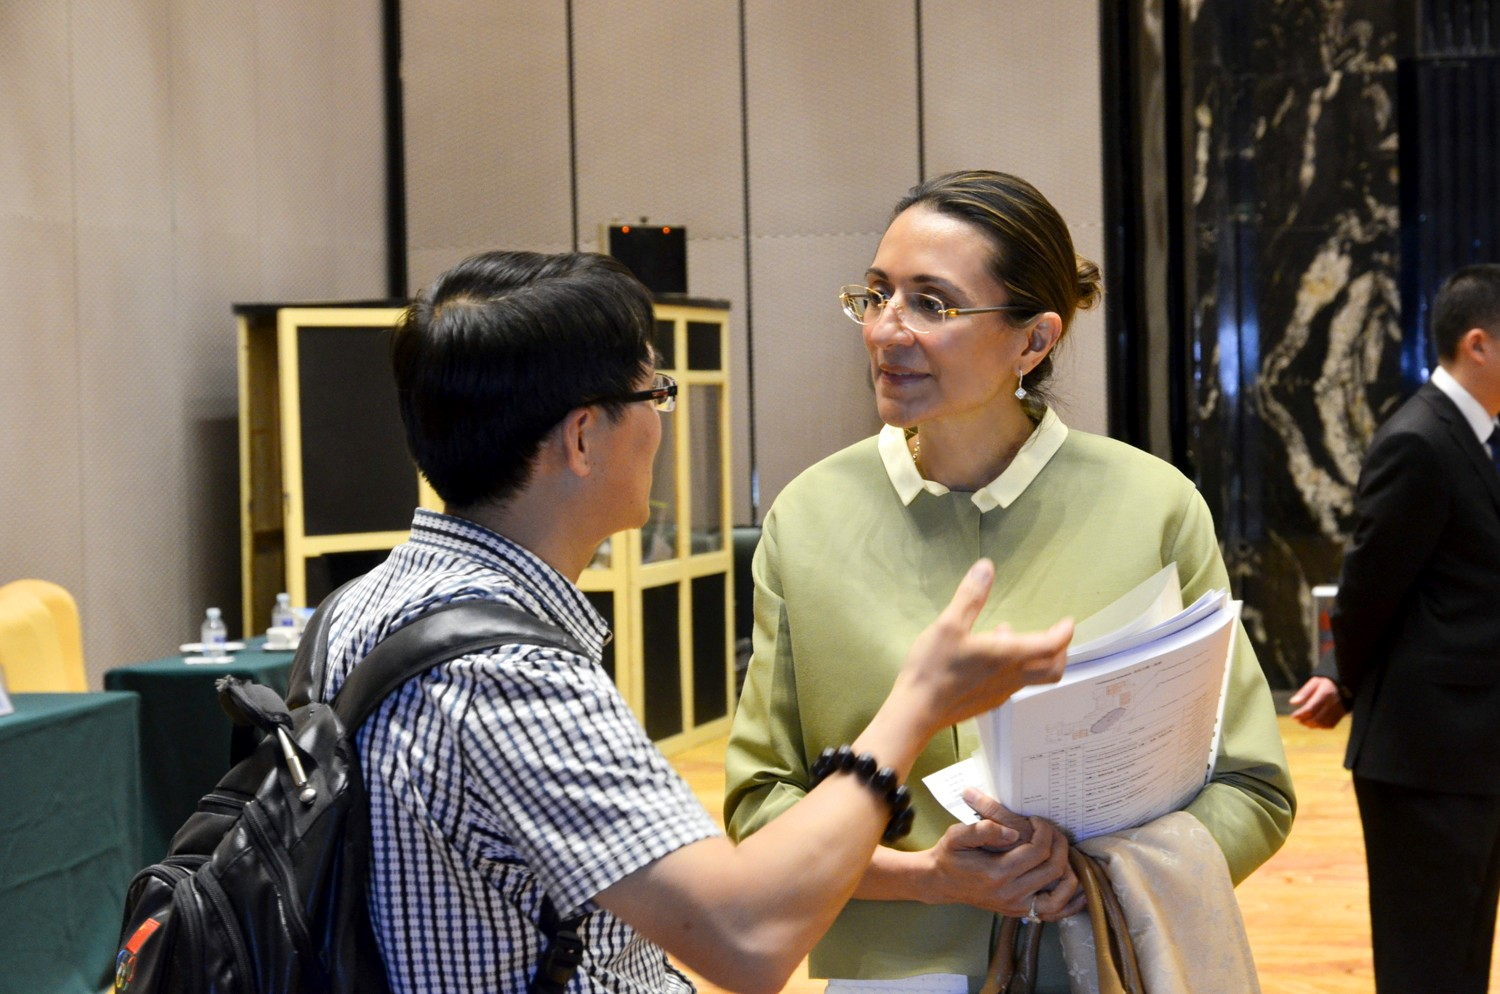 Vanessa Moriel, LIASE Group, Managing Director Asia speaks with a journalist.